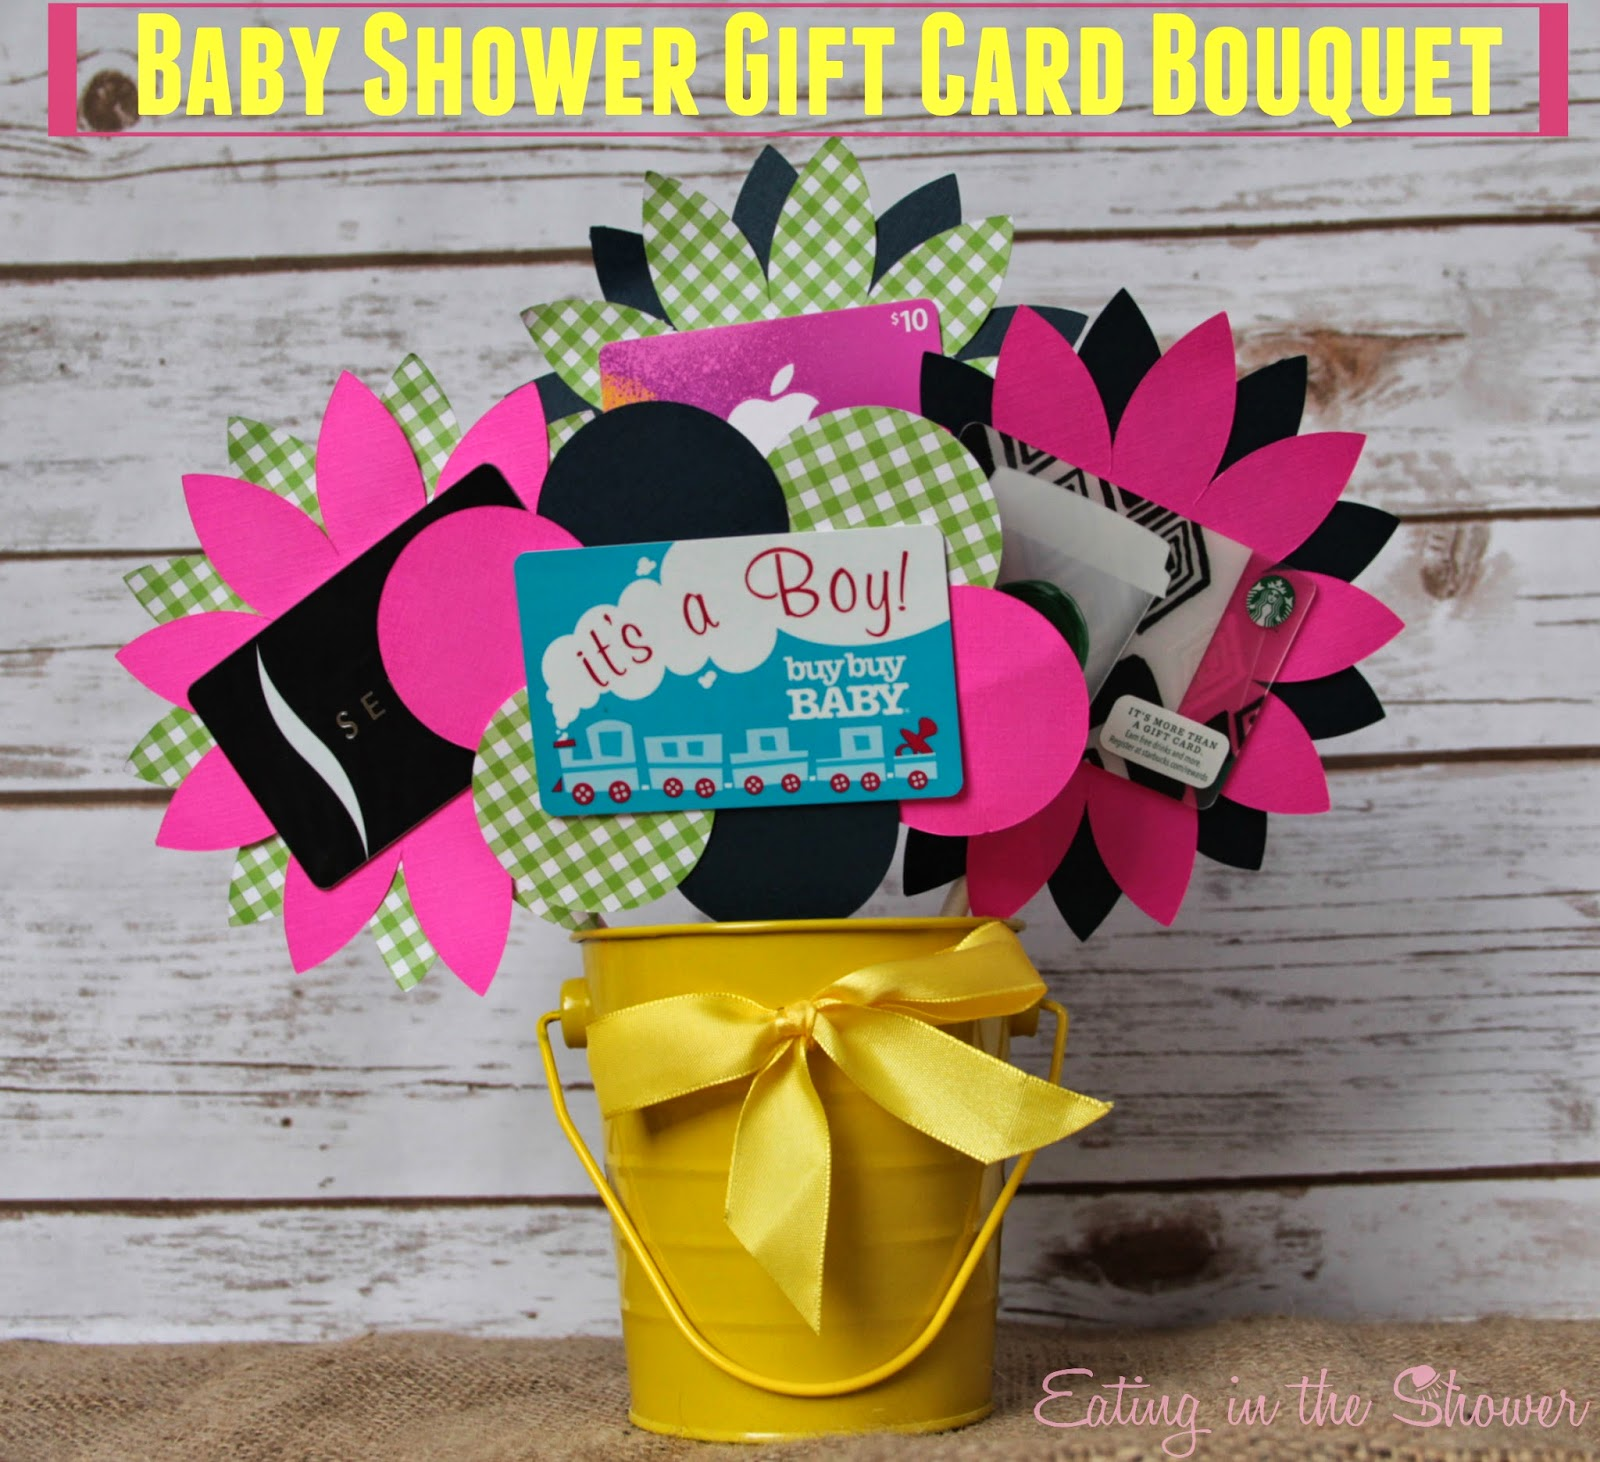 Eating in the shower baby shower gift card bouquet for the mom to be baby shower gift card bouquet for the mom to be negle Choice Image